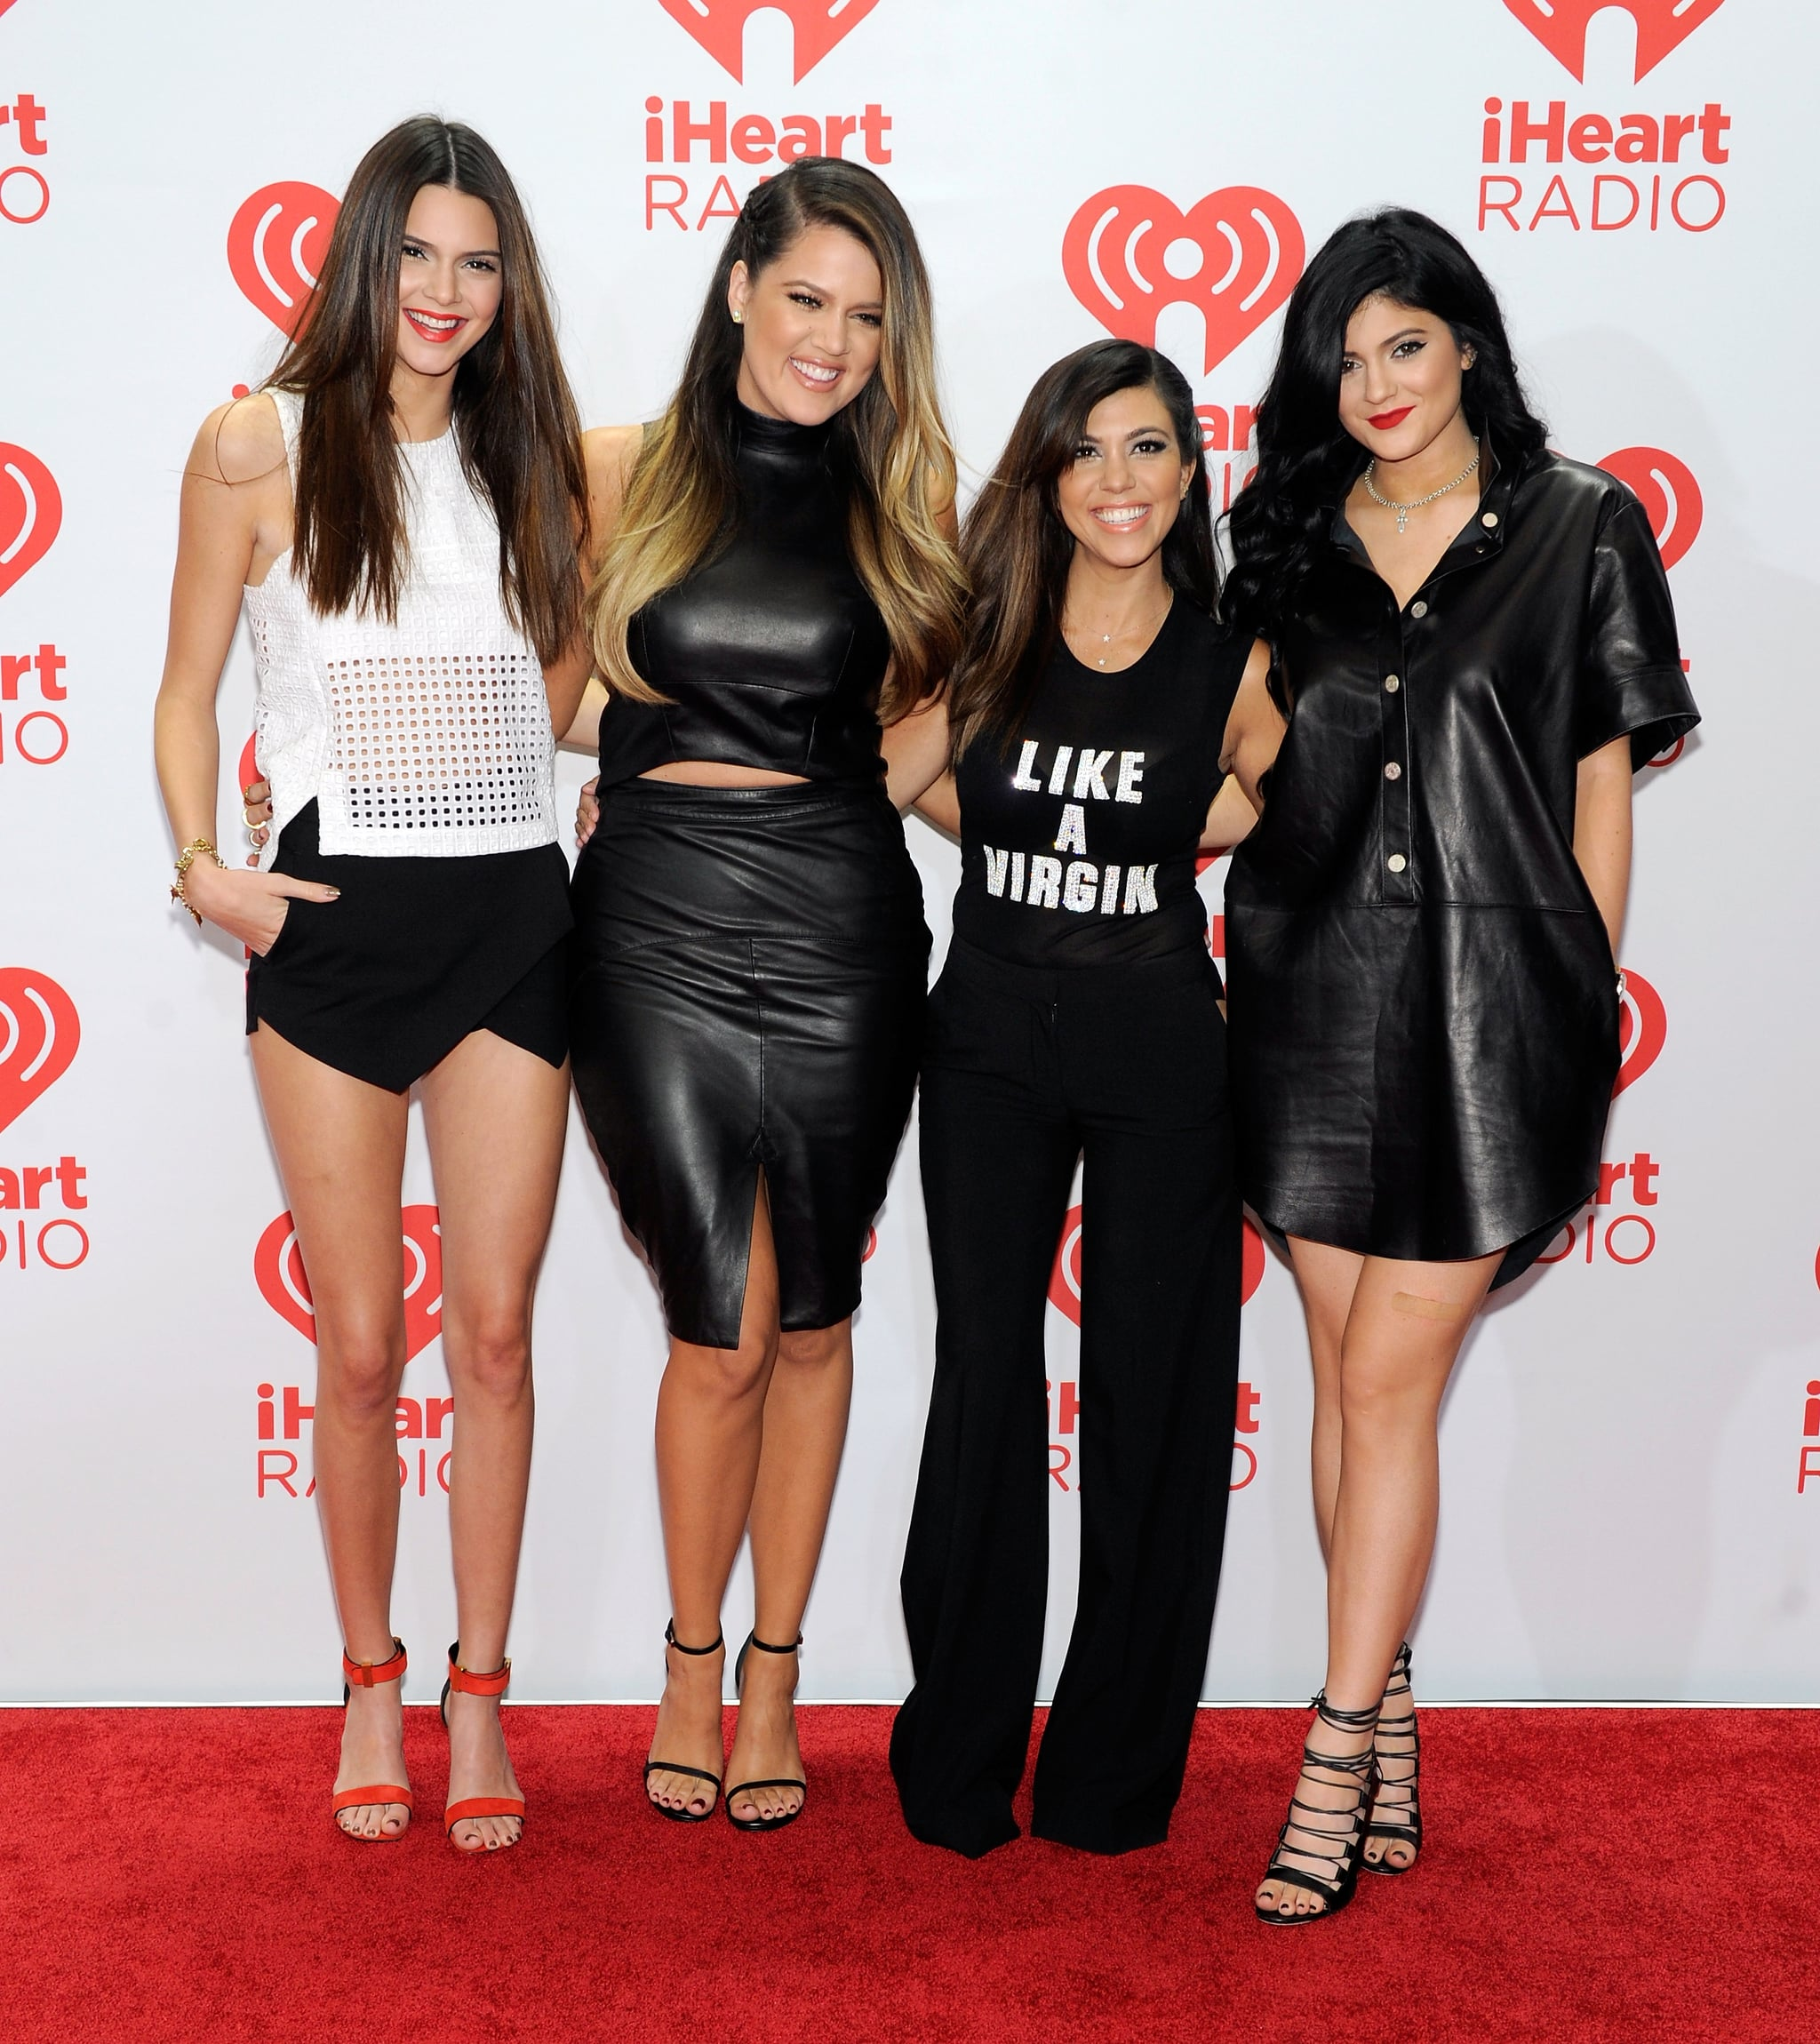 The Kardashians worked their stuff on the red carpet.